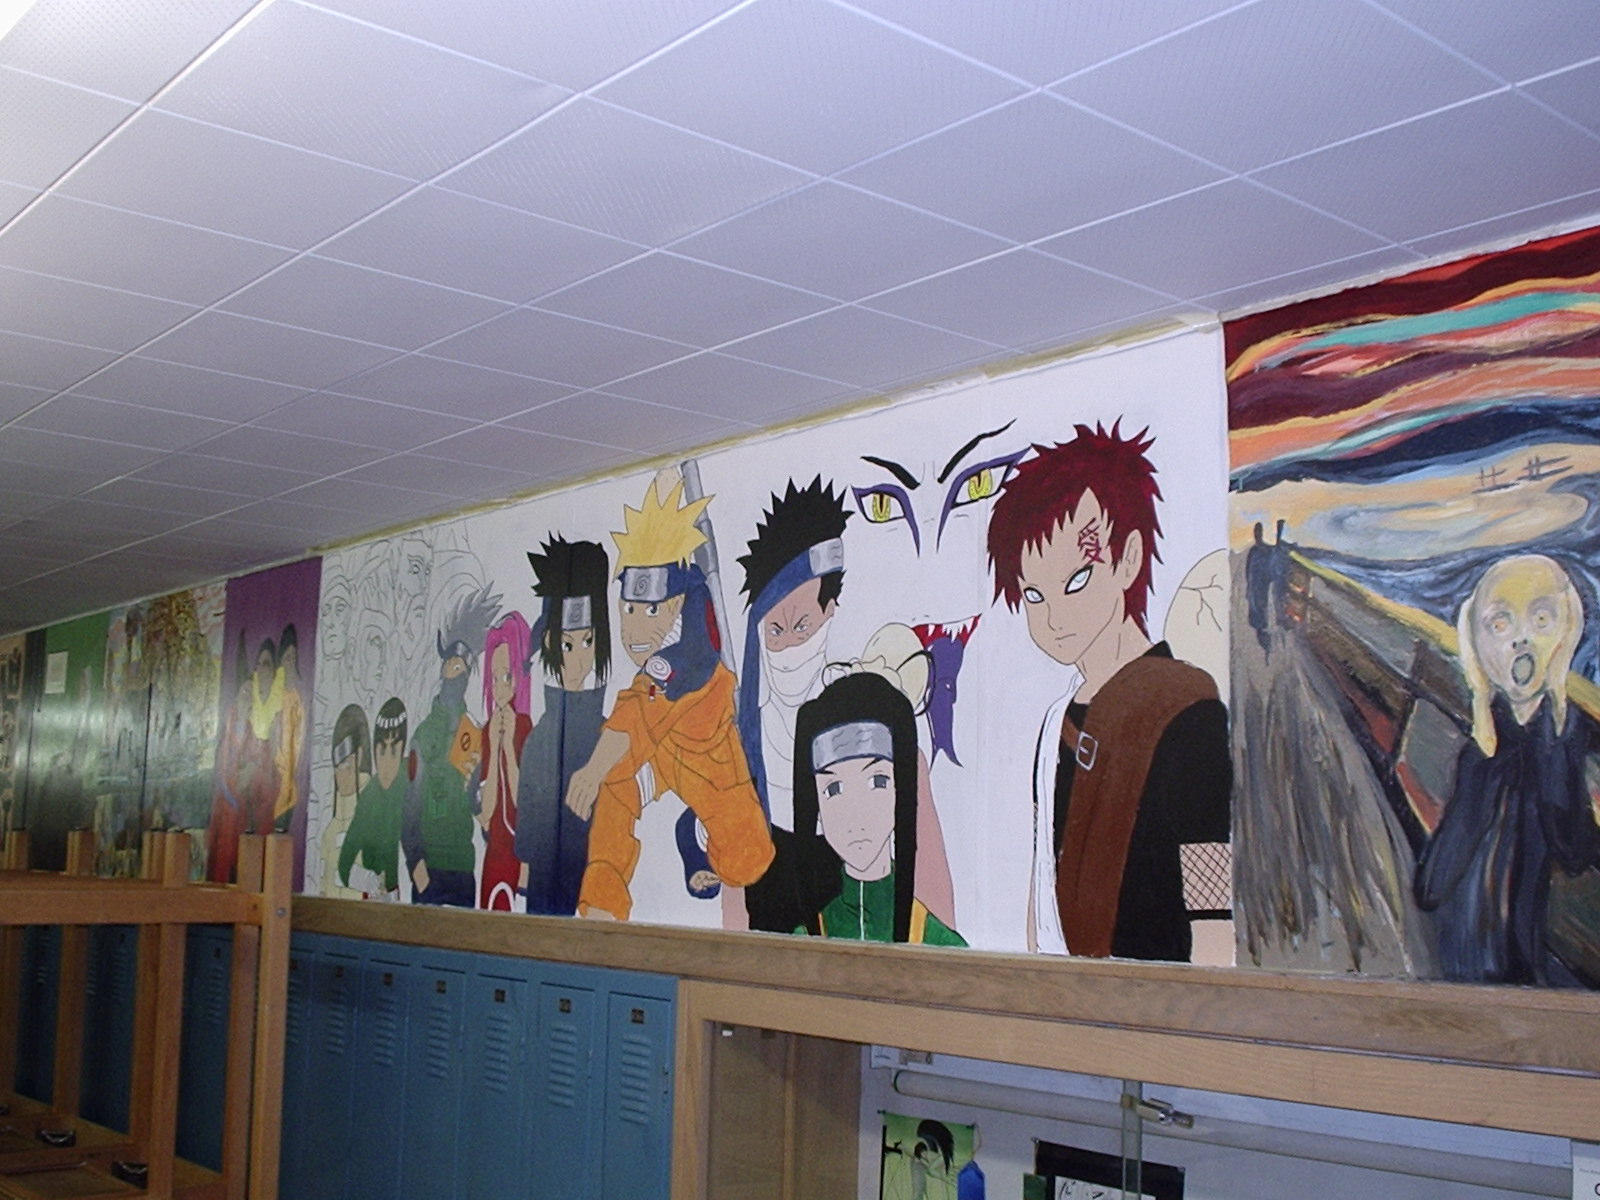 naruto mural by animatt on deviantart